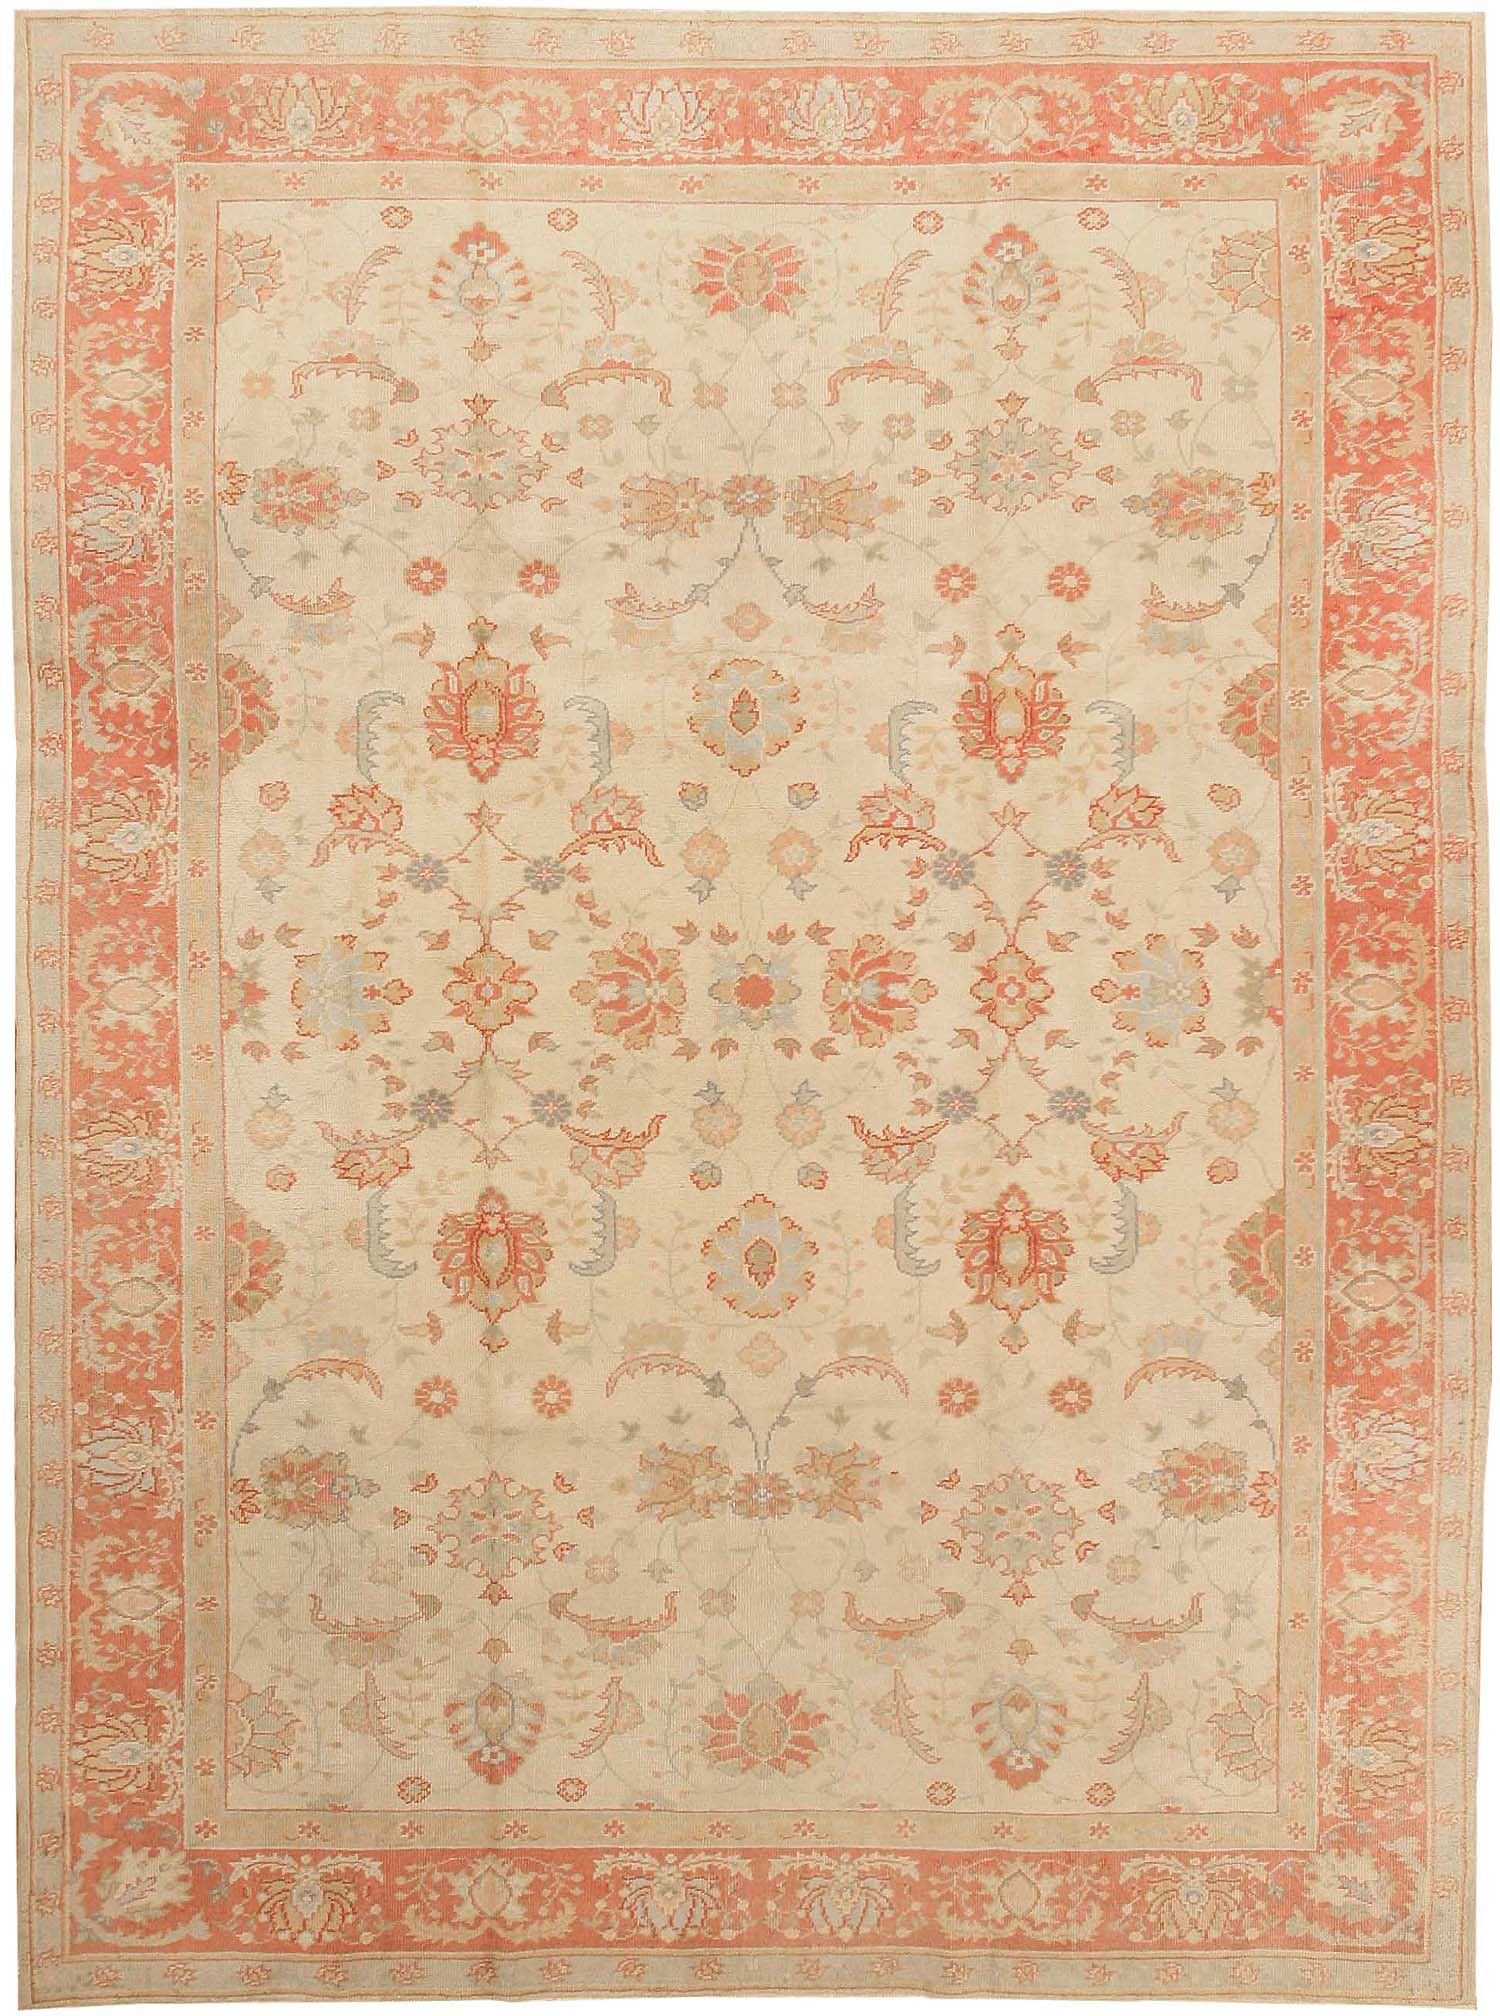 Incredible oushak rugs for floorings and rugs ideas with antique oushak rugs